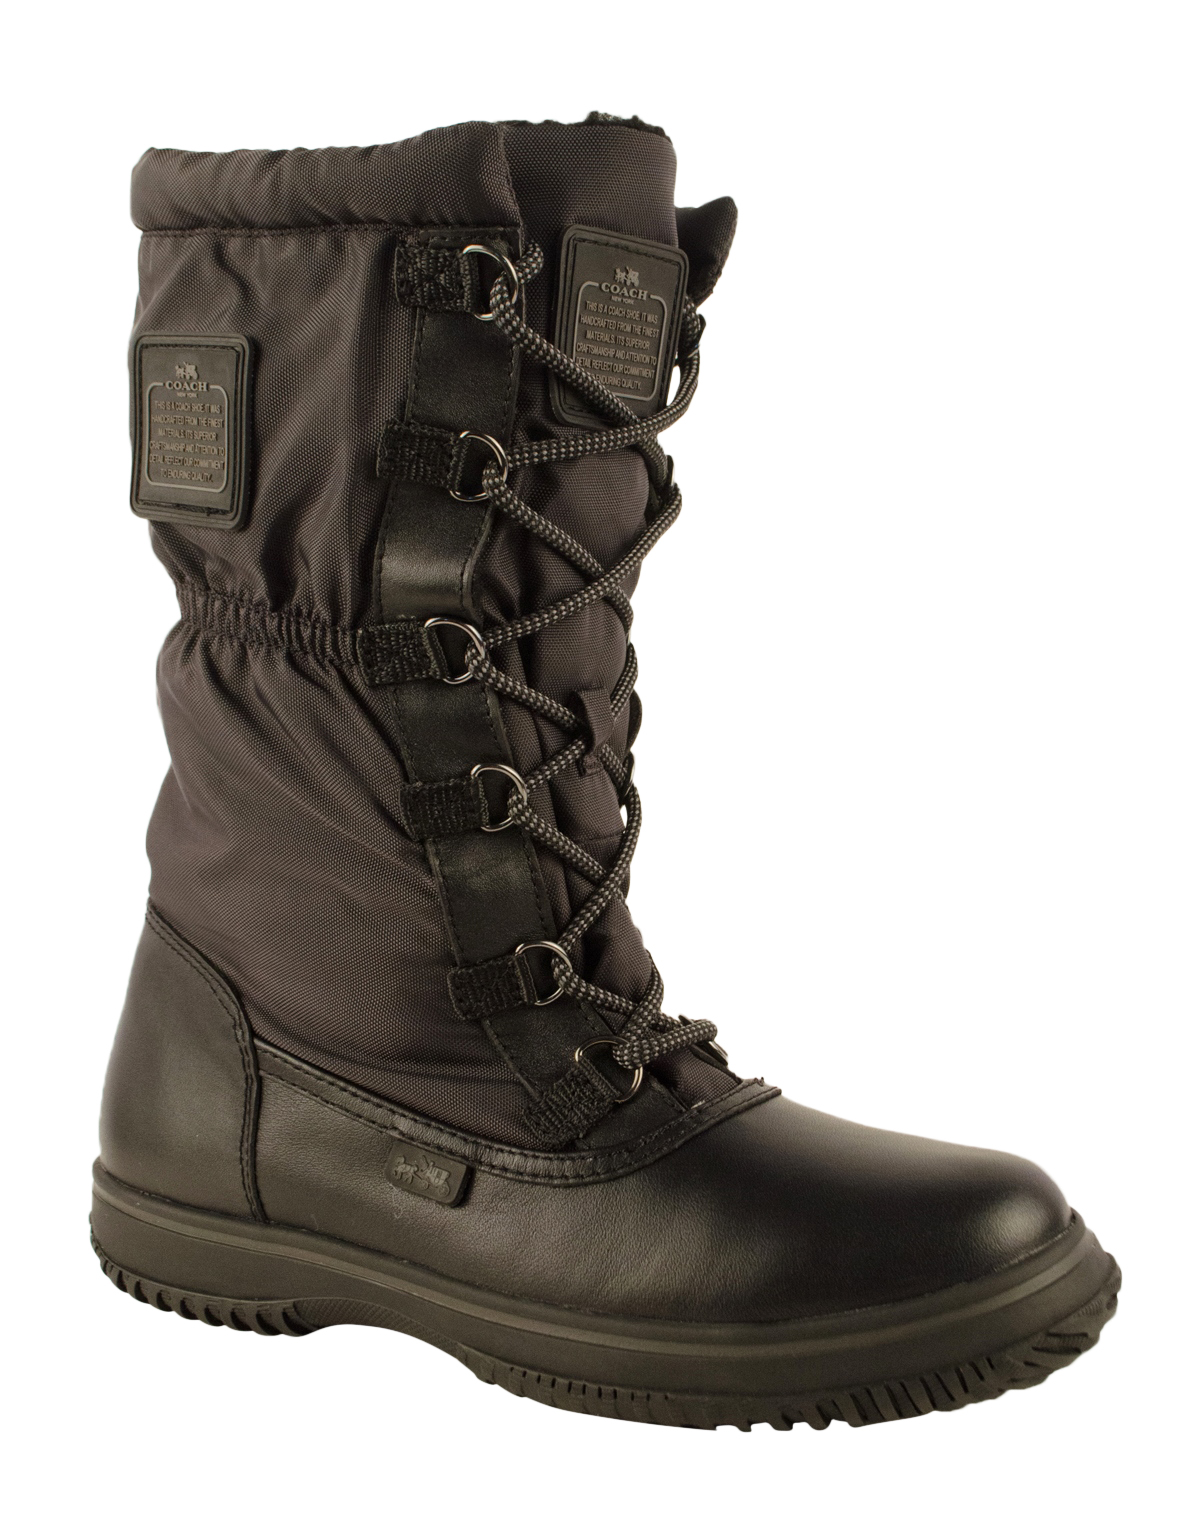 Coach Women S Sage Cold Weather Lace Up Boots Ebay